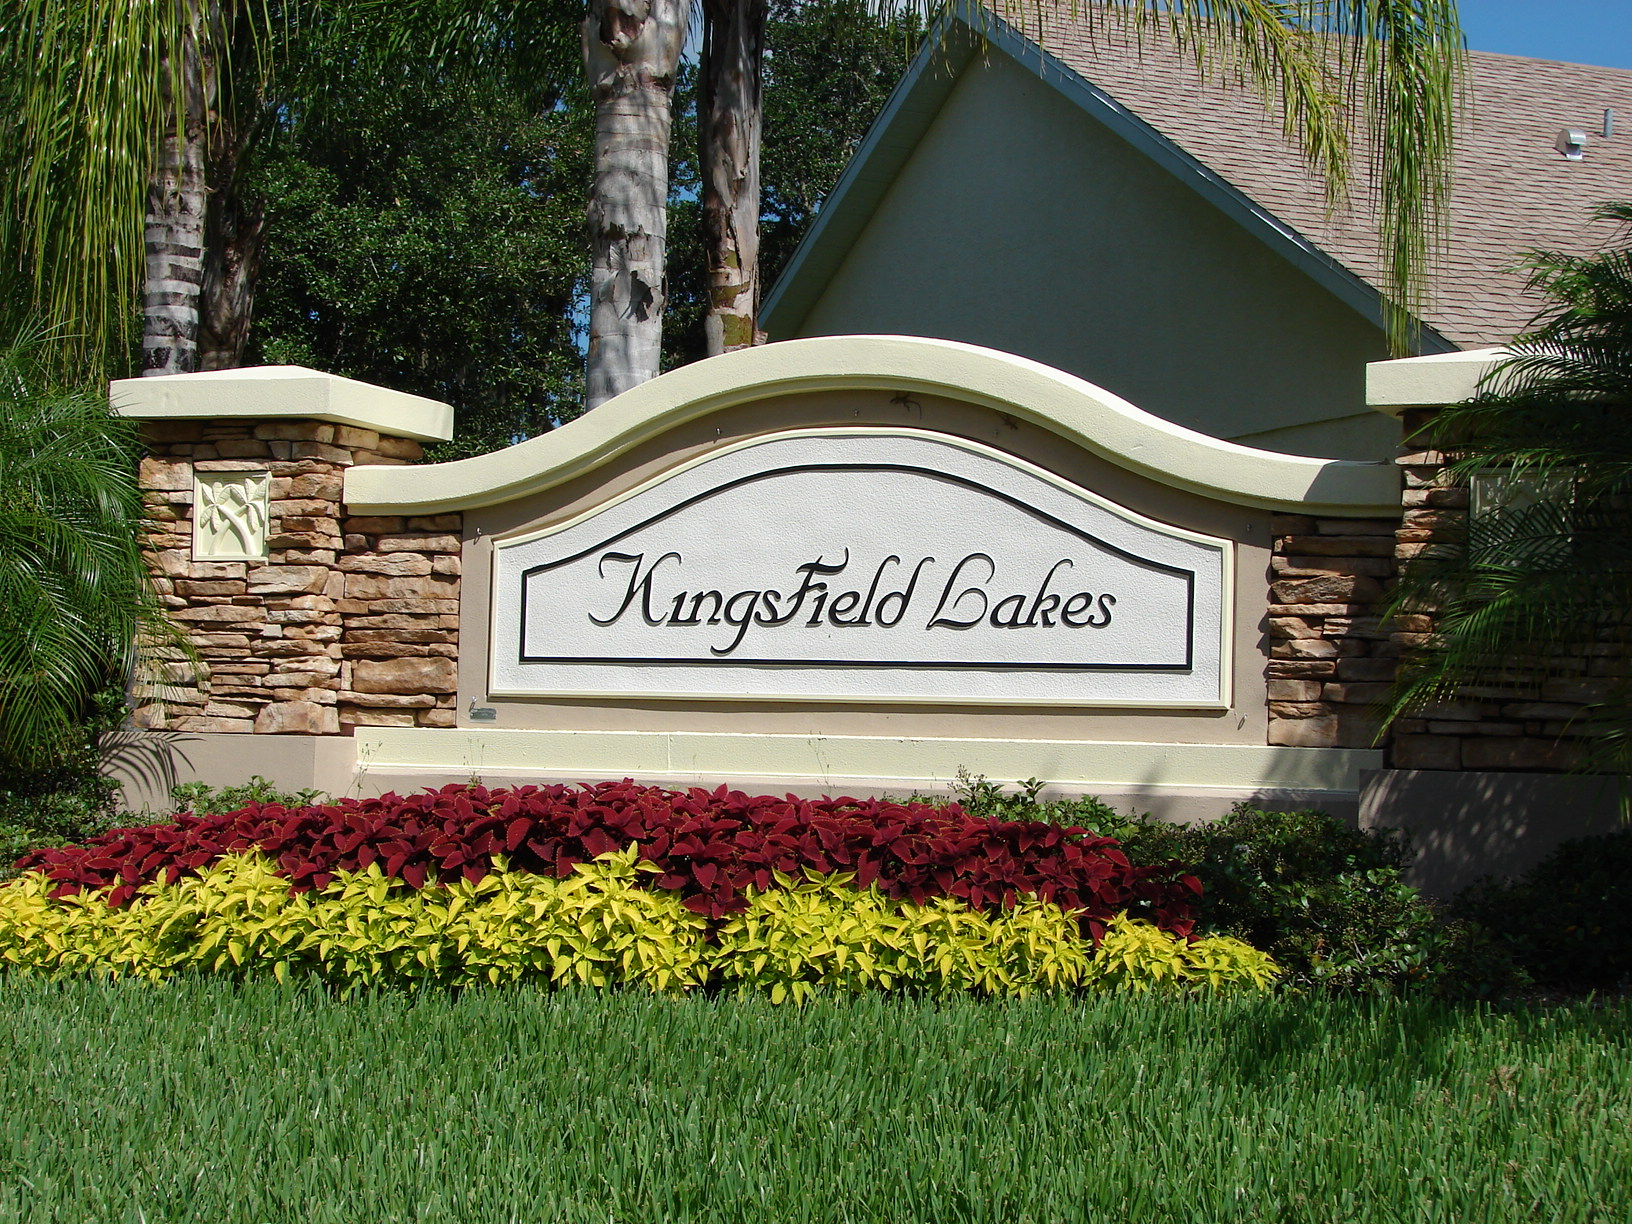 Kingsfield Lakes Homes for Sale